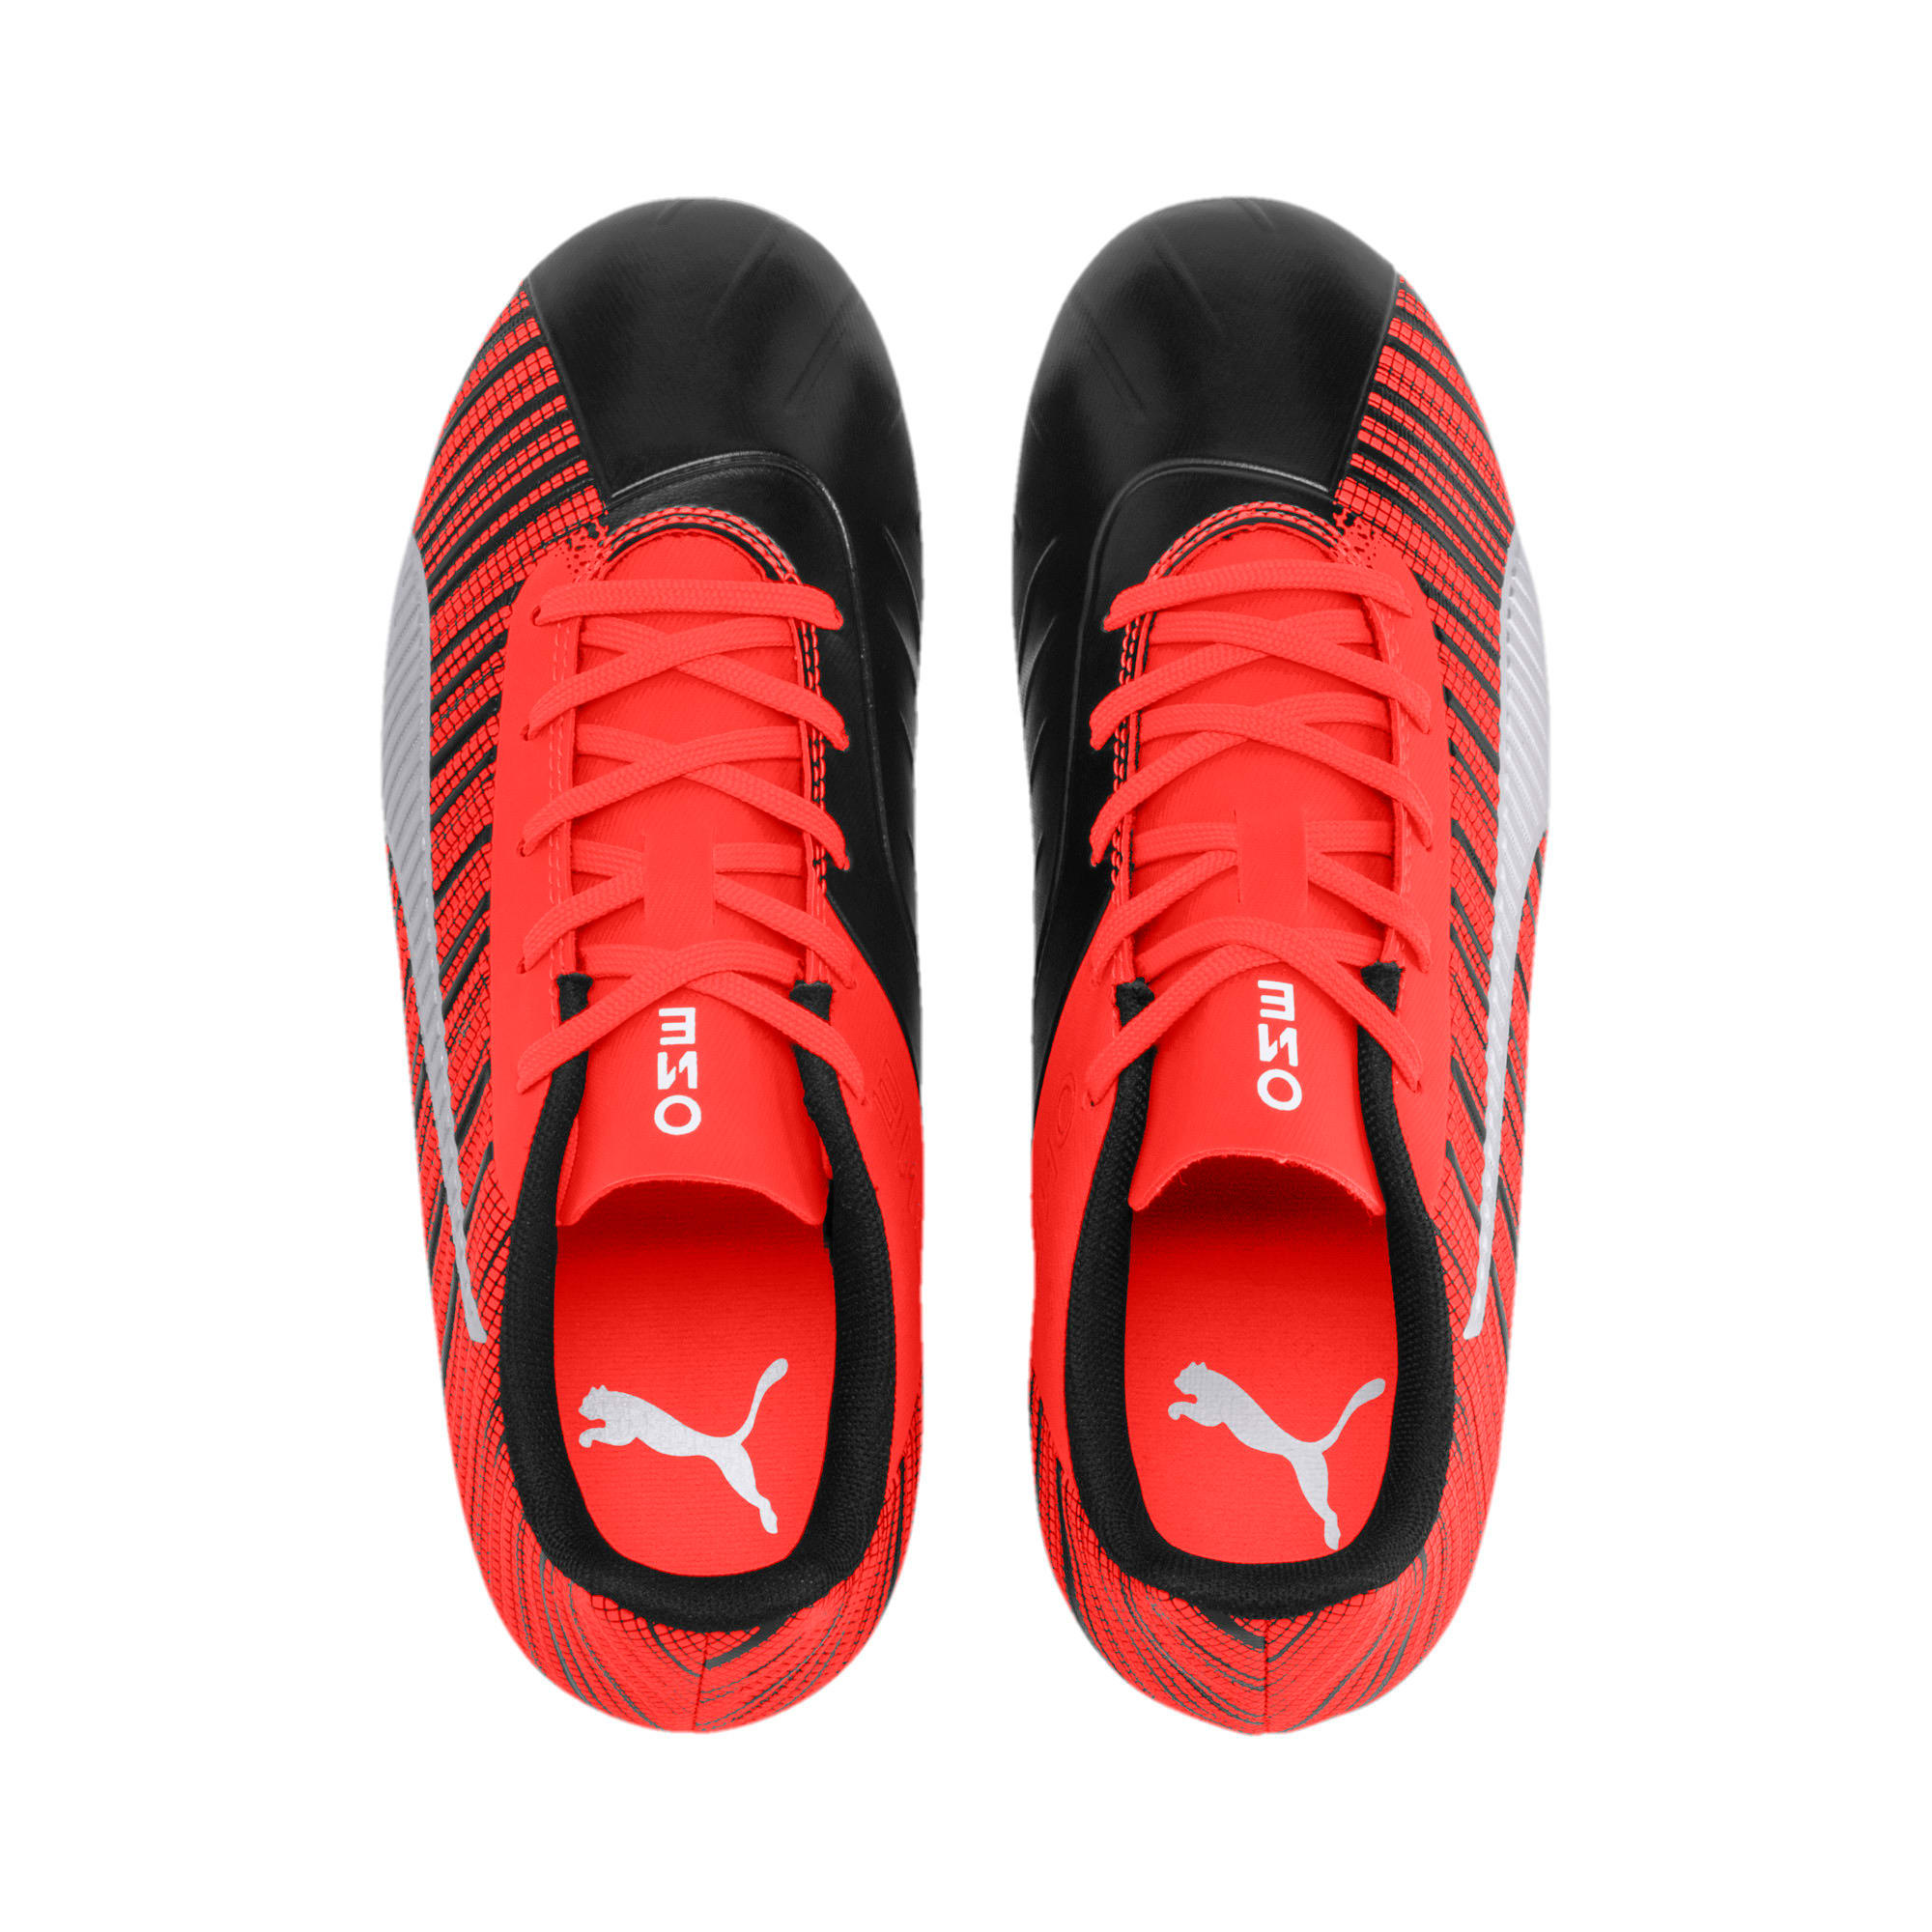 Thumbnail 6 of PUMA ONE 5.4 IT Youth Football Boots, Black-Nrgy Red-Aged Silver, medium-IND